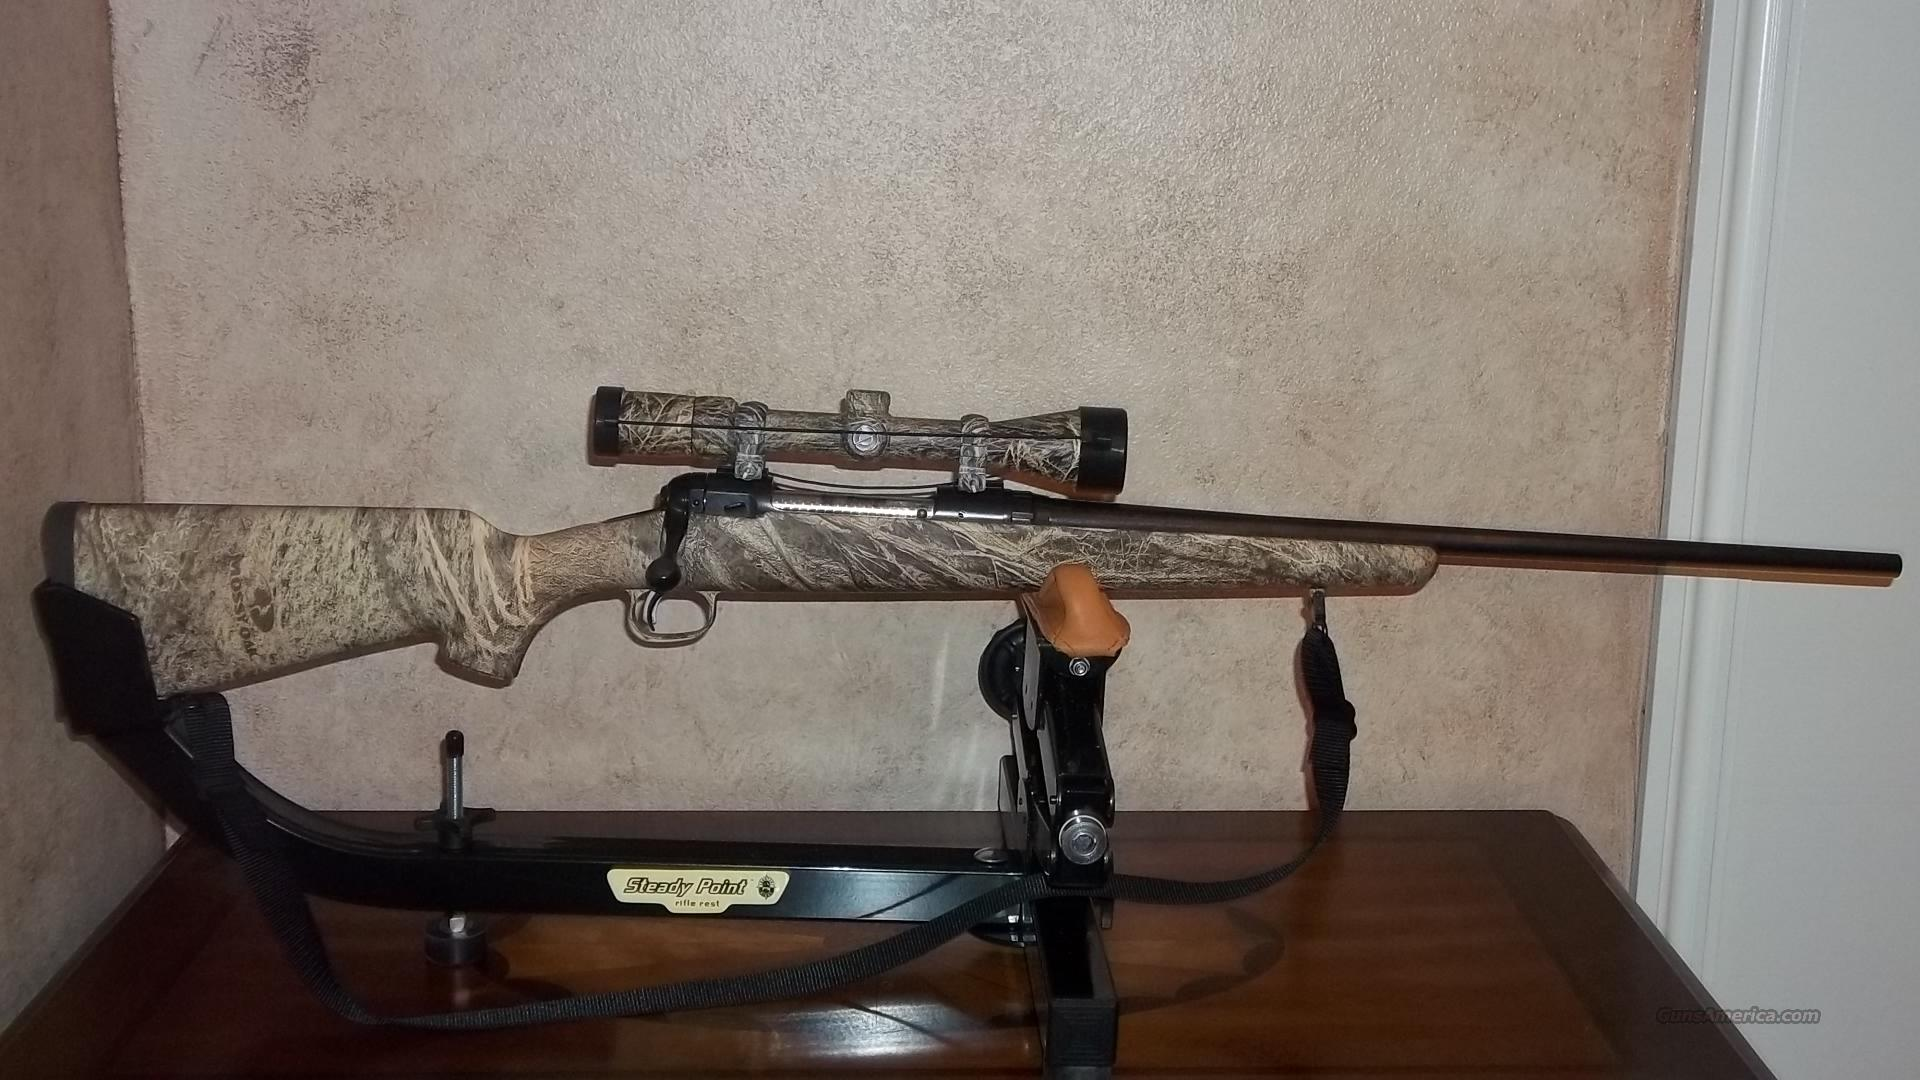 30-06 Savage Model 111 with Scope  Guns > Rifles > Savage Rifles > Accutrigger Models > Sporting